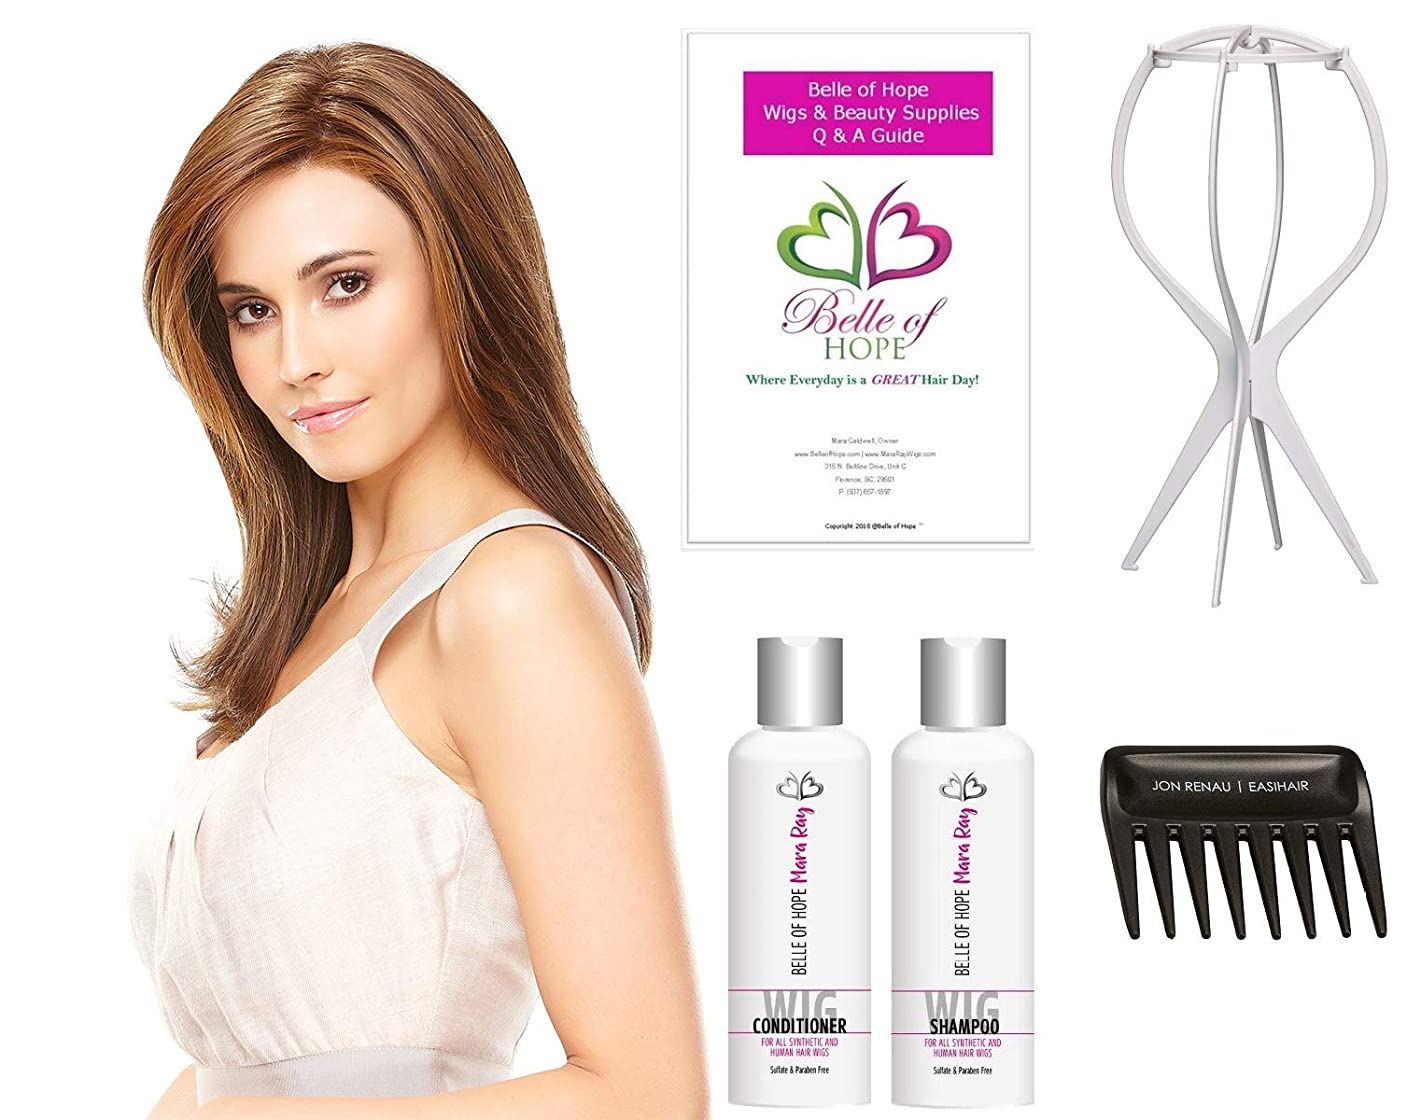 Fiery HD Synthetic Lace Front wig by Jon Renau, Plastic Wig Stand, Wide Tooth Comb, Mara Ray Luxury 4oz Hair Care Kit, 19 Page Belle of Hope Q&A Bookle - Bundle 6pct (1BRH30)